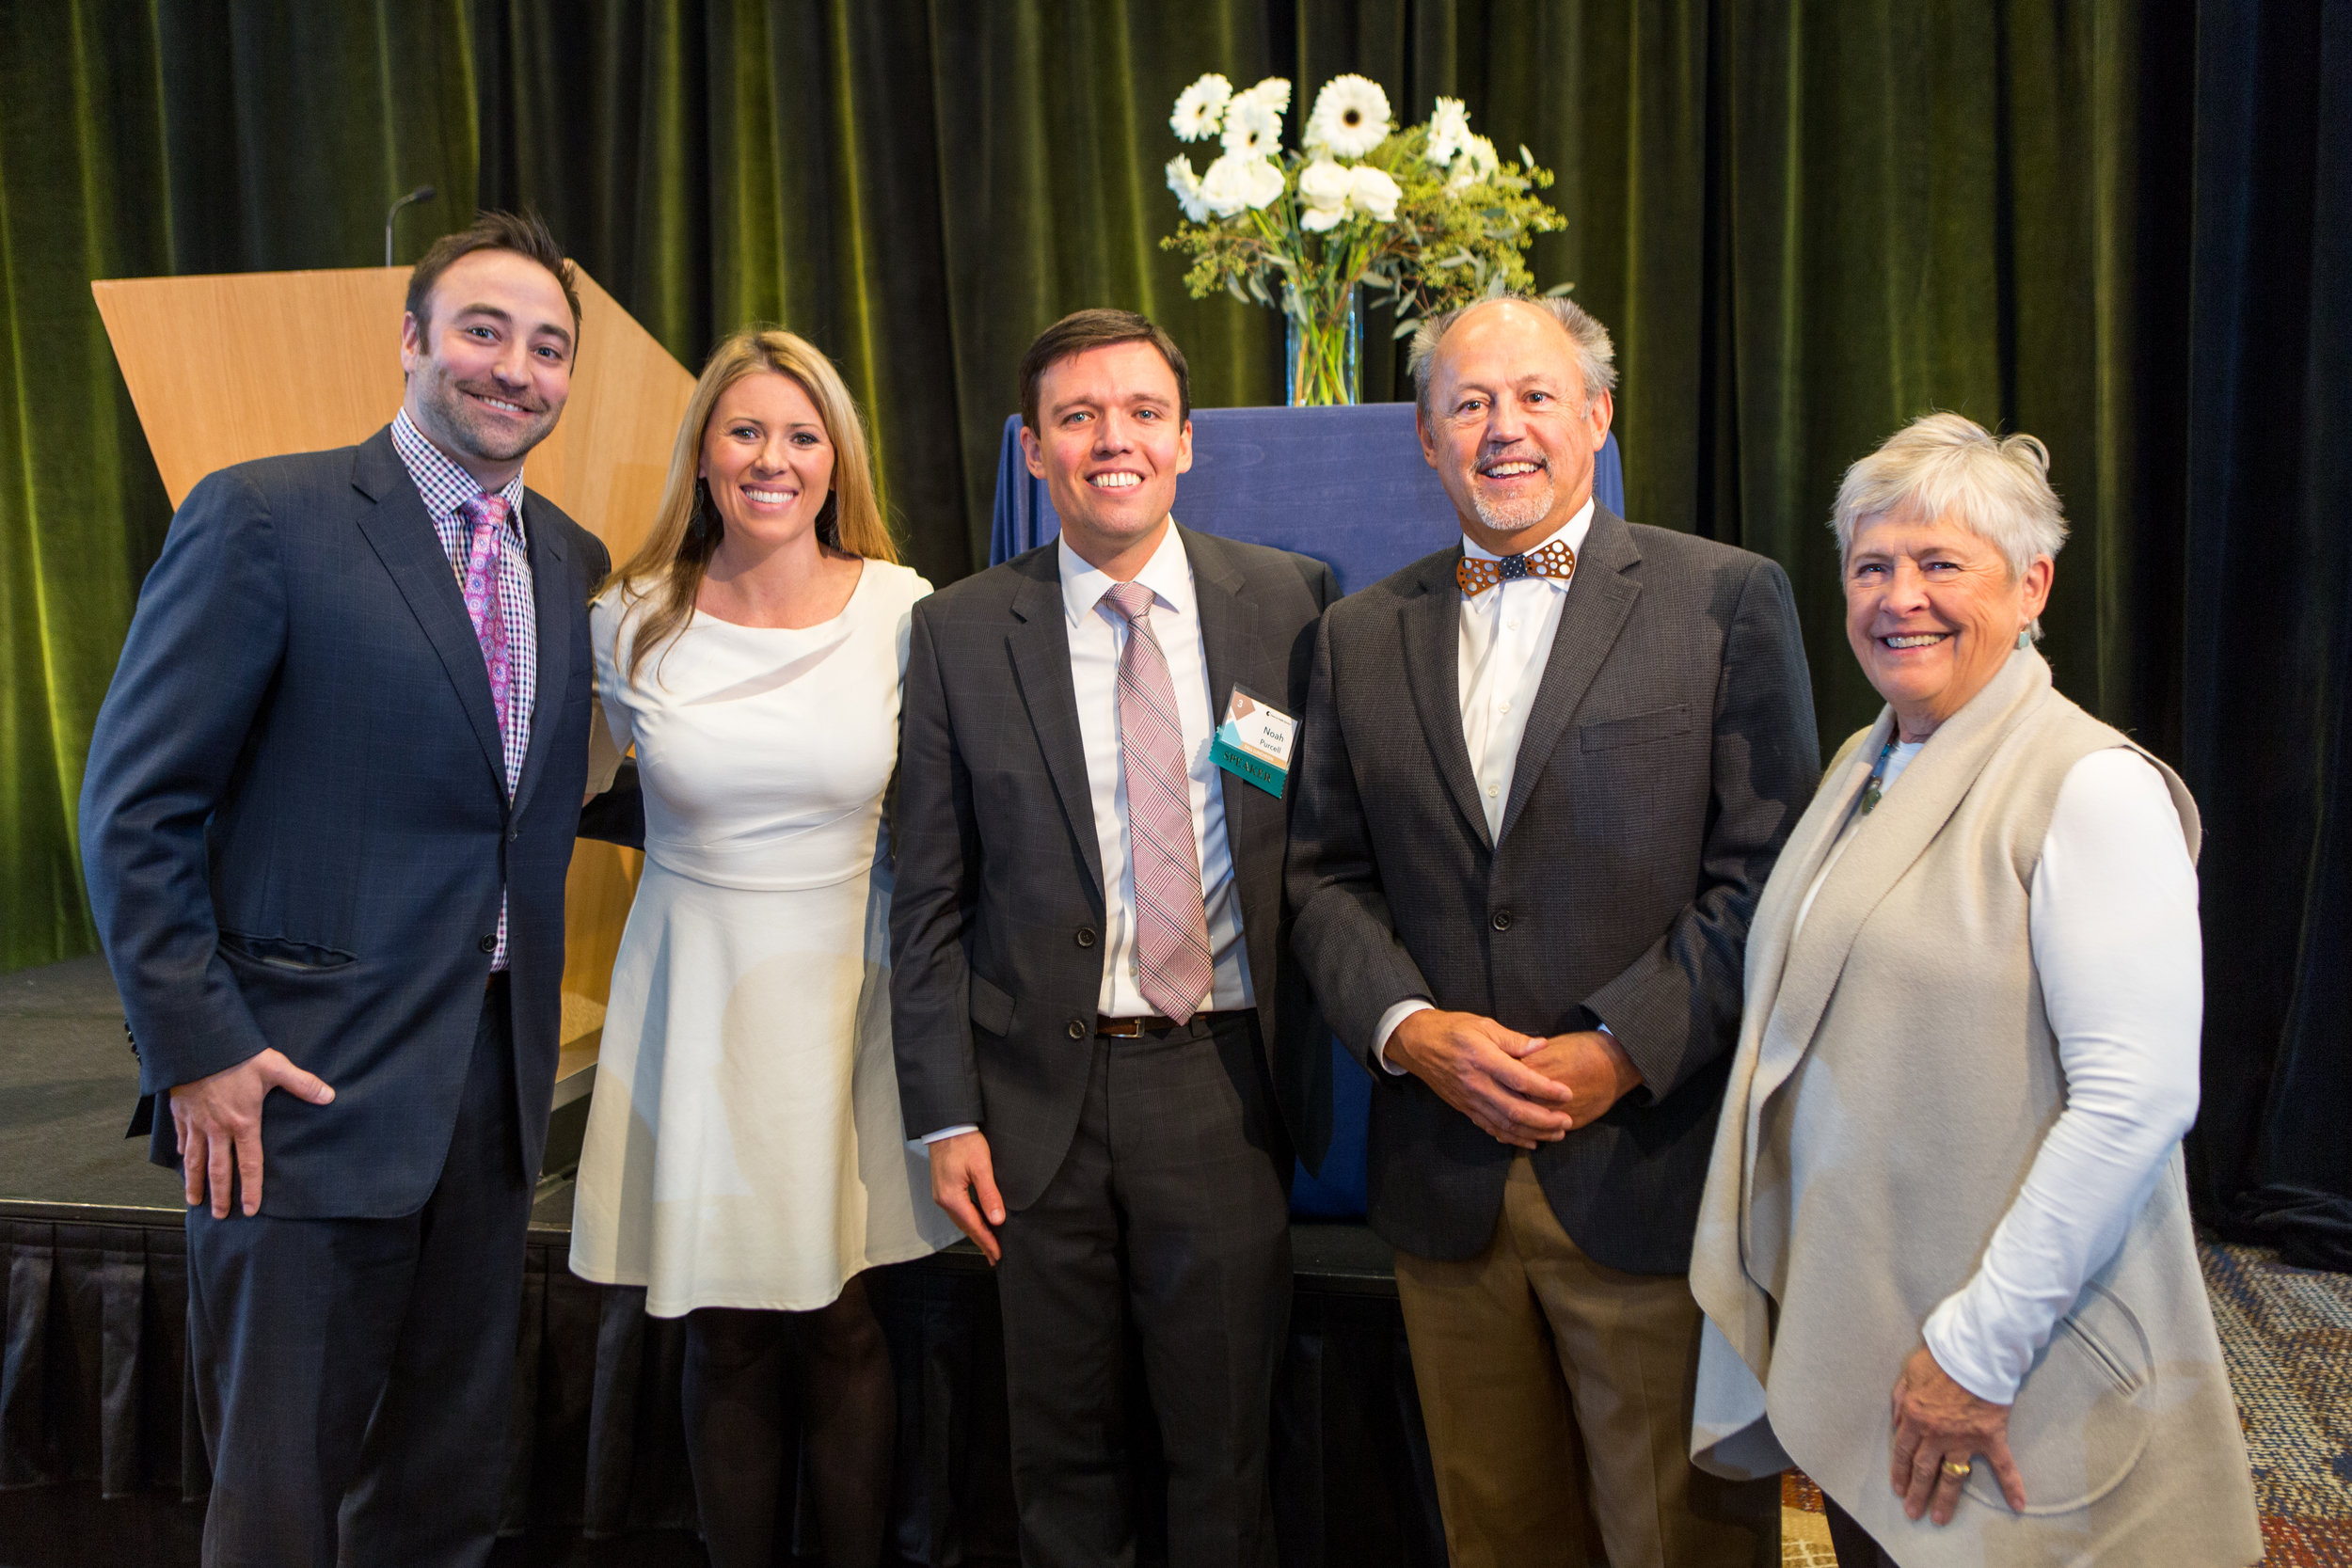 Luncheon guests with event MC Natasha Ryan (second from left), WA Solicitor General Noah Purcell (middle), and TIPS Board Chair Joe Brotherton (second from right)